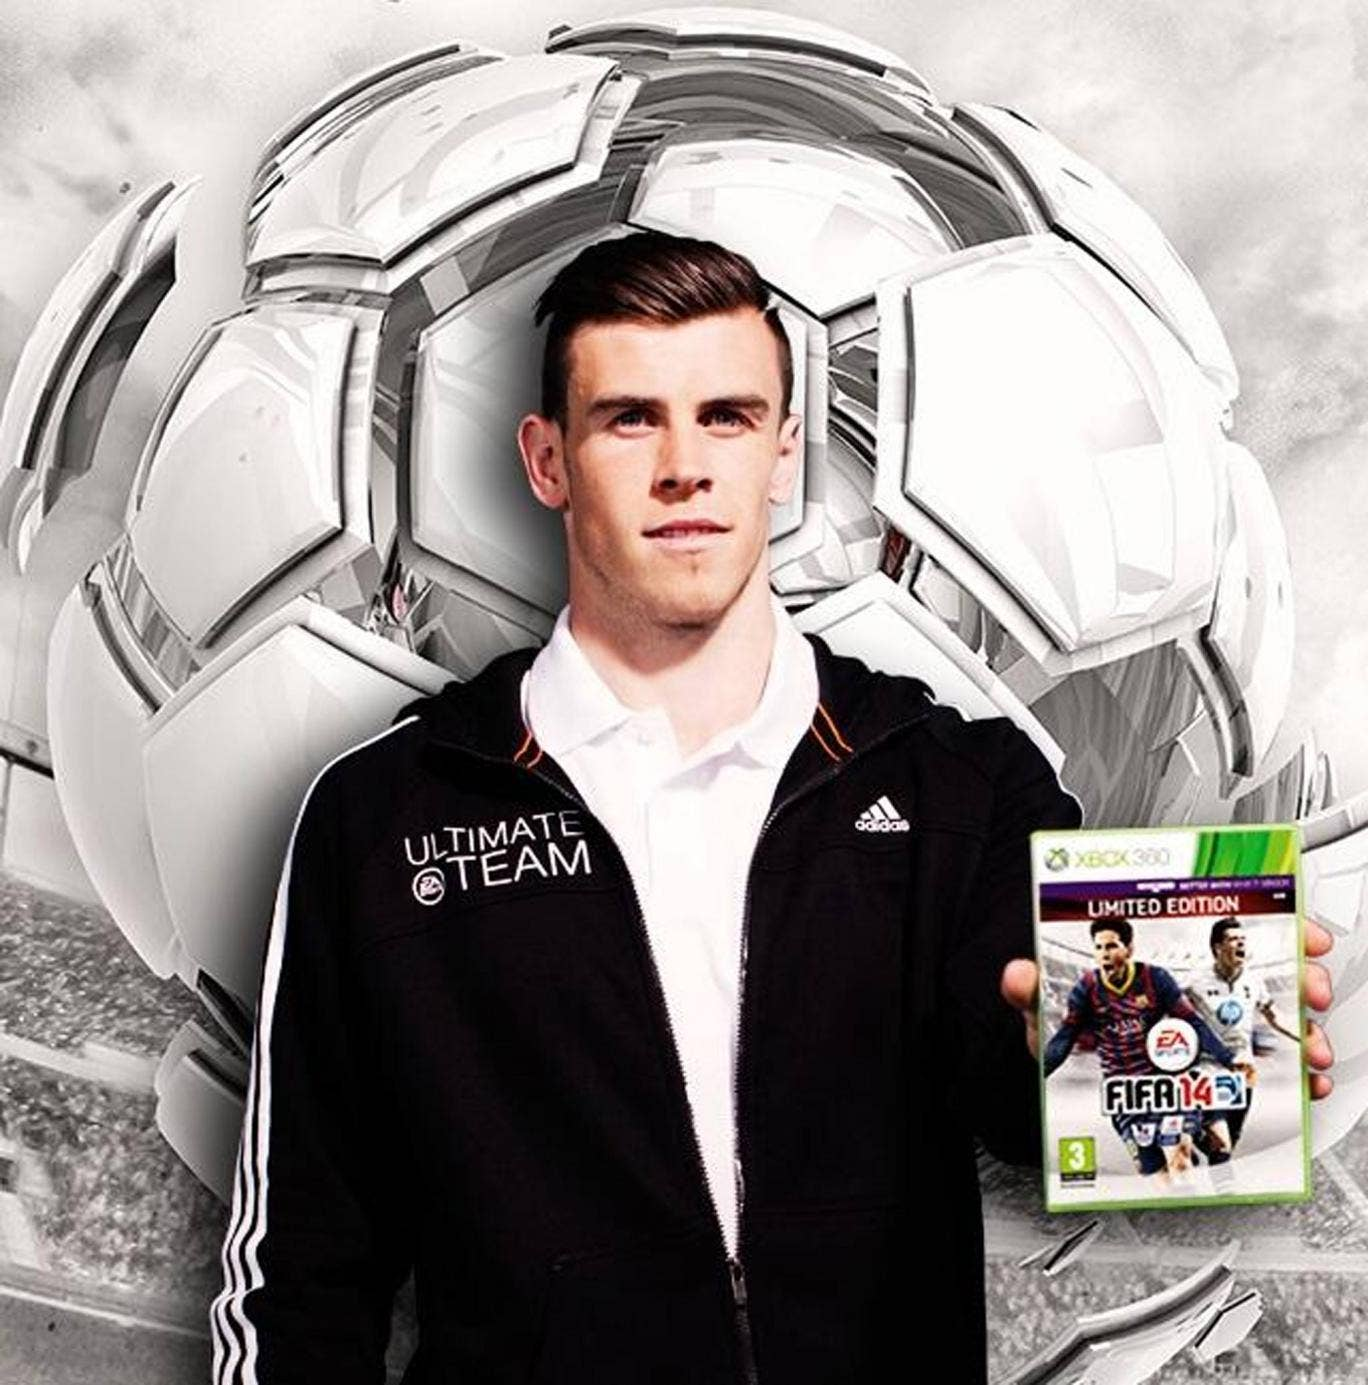 Gareth Bale with the a copy of Fifa 14